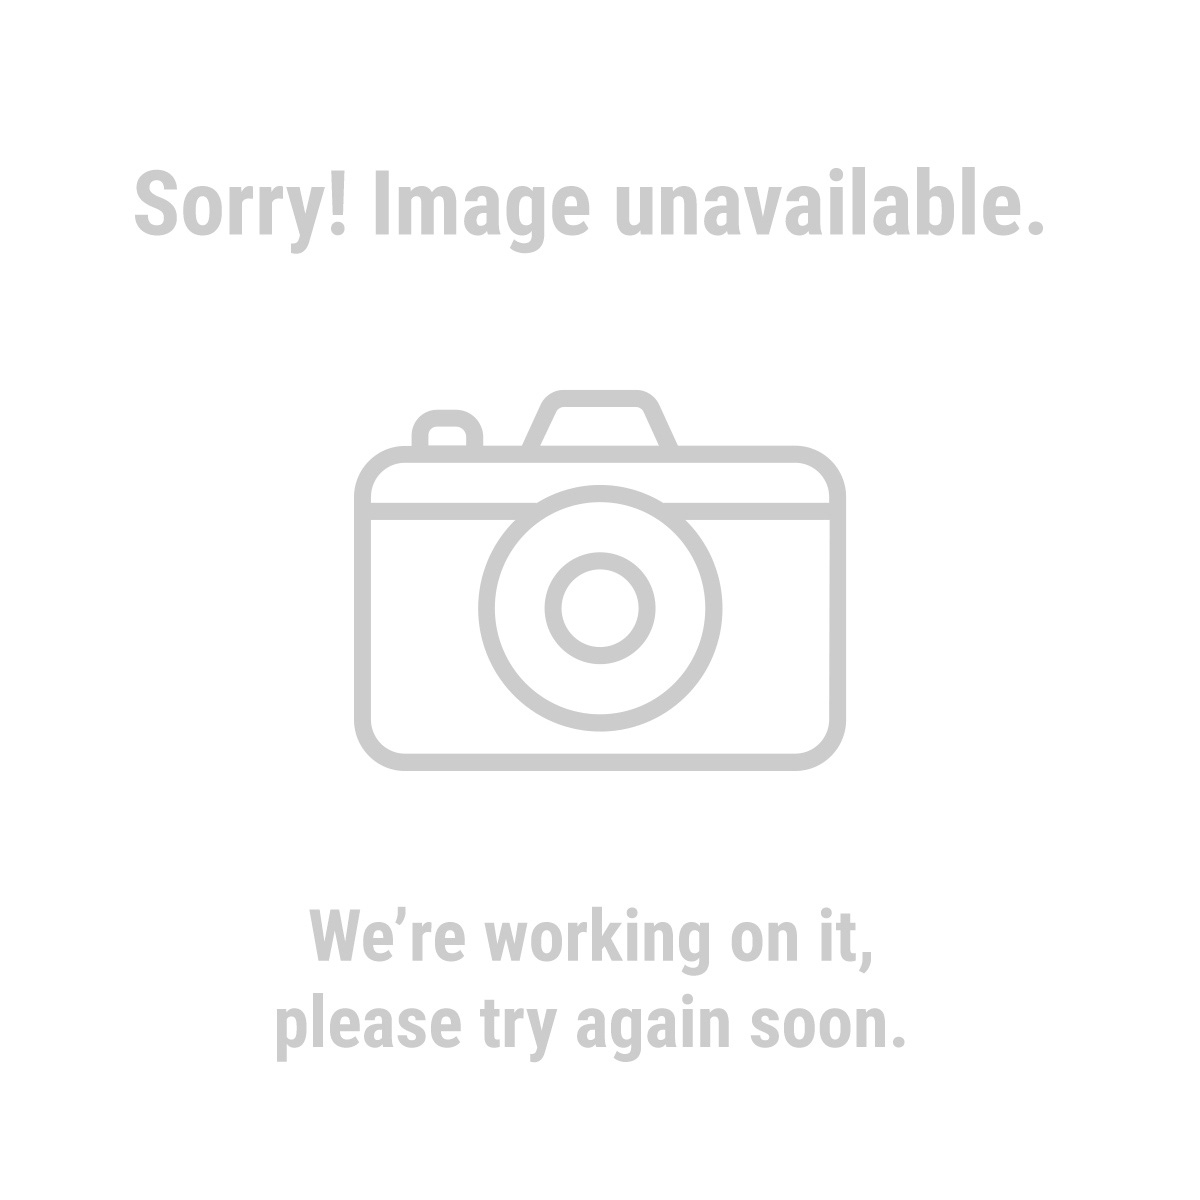 HFT® 60457 8 ft. 4 in. x 11 ft. 6 in. Green/Farm All Purpose/Weather Resistant Tarp